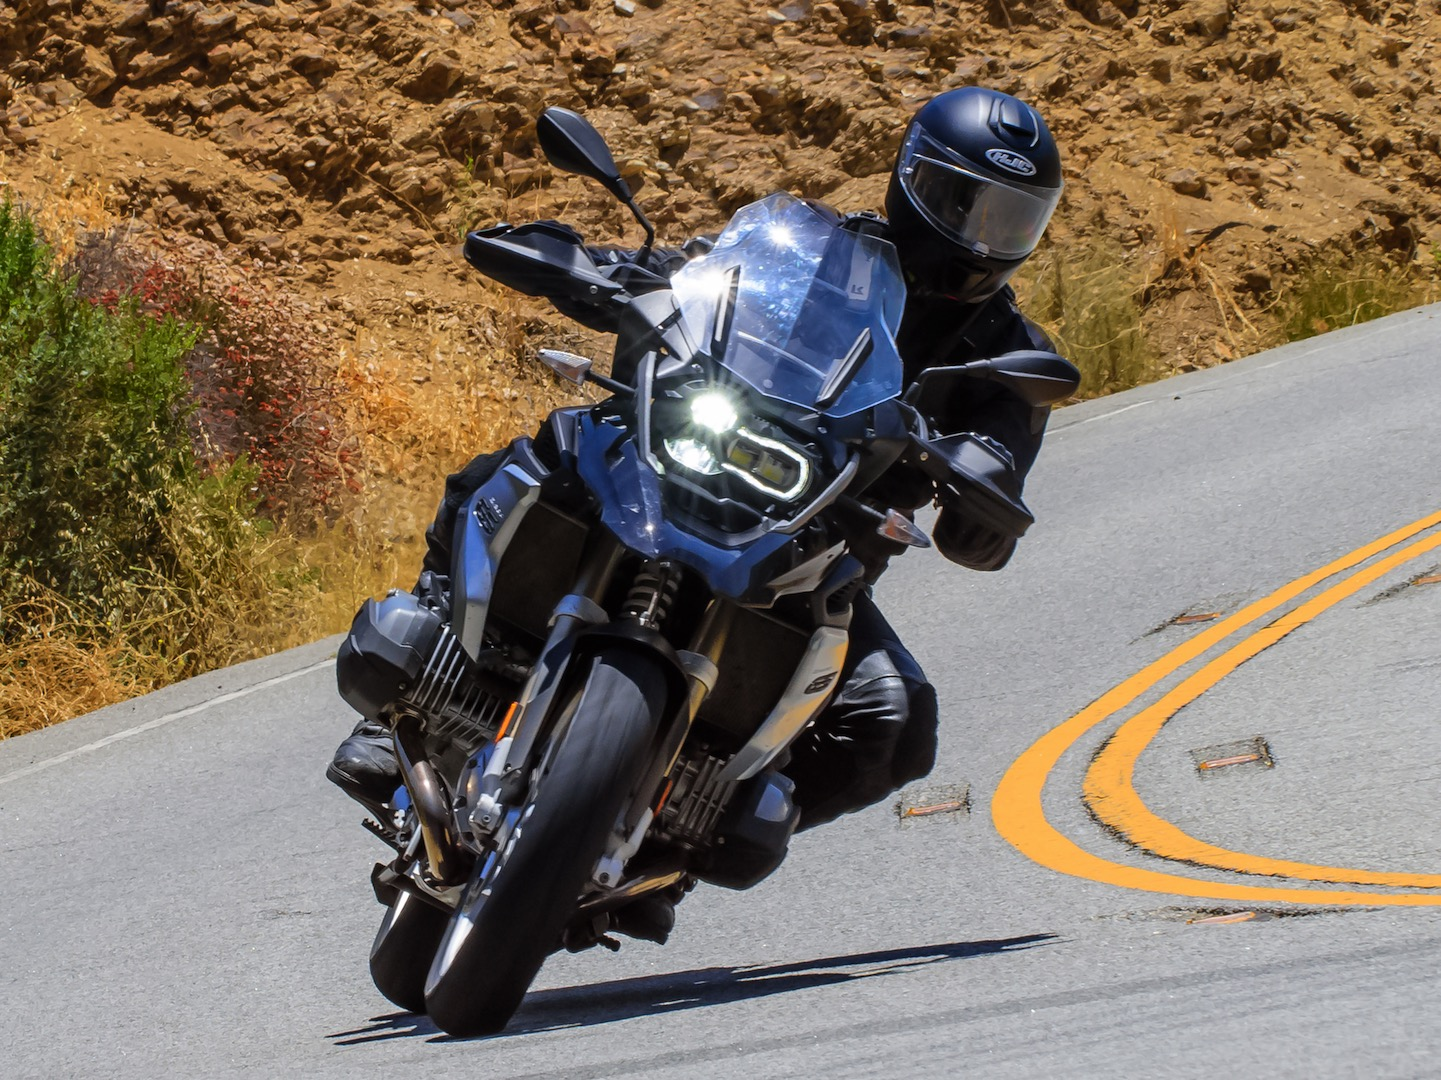 2018 BMW R 1200 GS Review (Owner's Perspective)